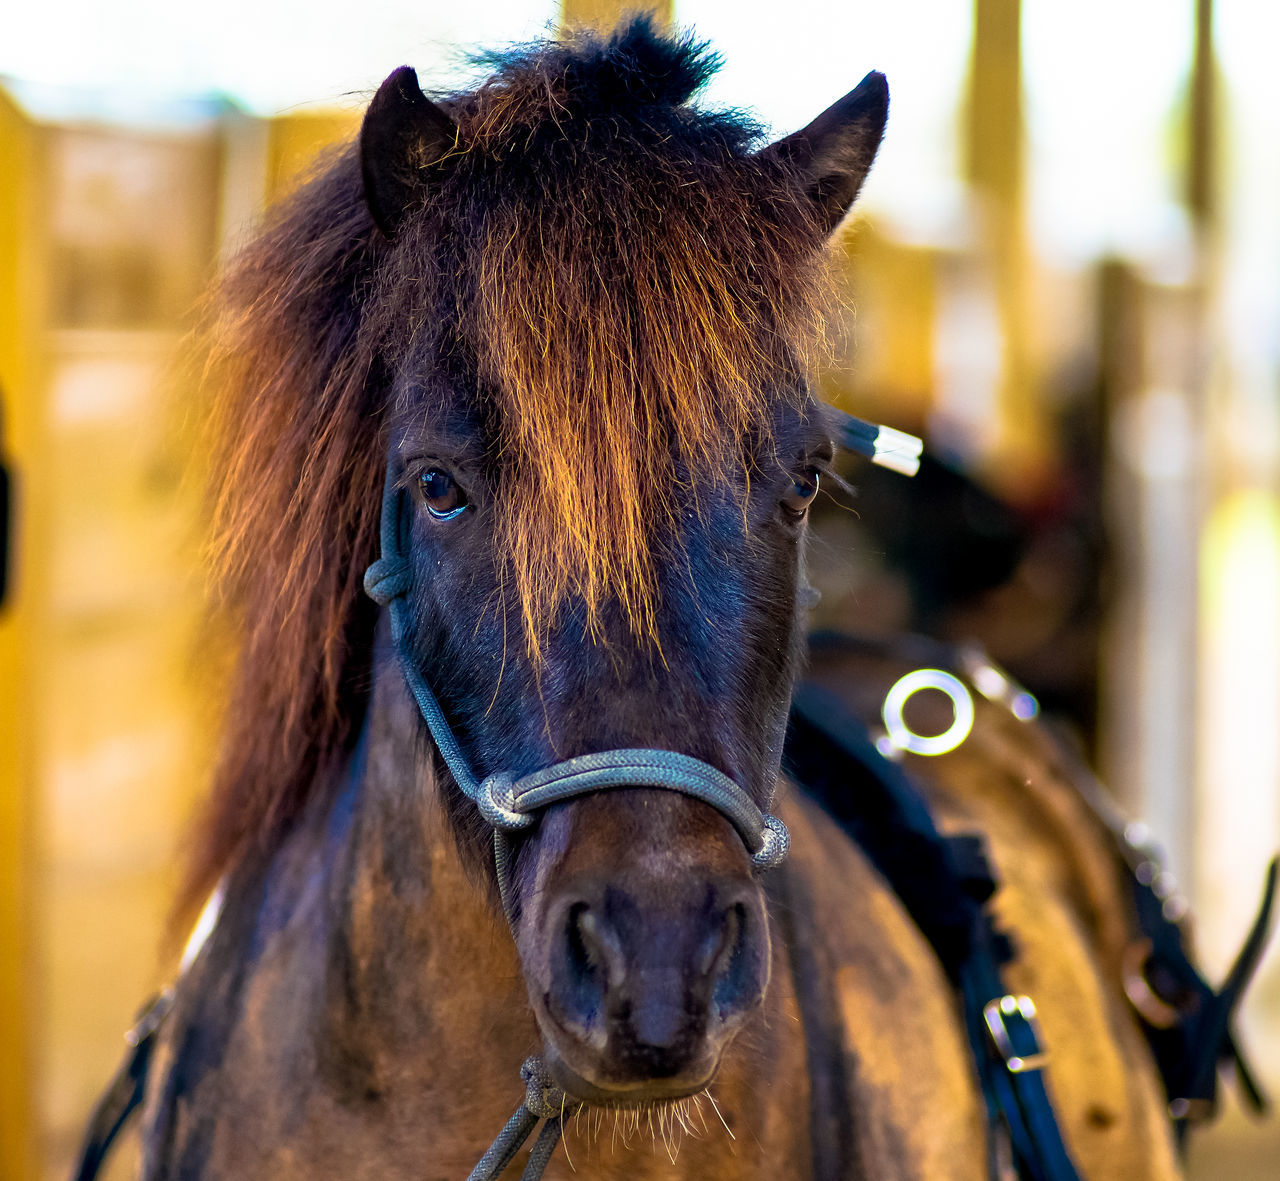 Animal Head  Animal Themes Bridle Brown Close-up Day Domestic Animals Focus On Foreground Herbivorous Horse Horse Portrait Livestock Mammal Mane Mini Bar Attack Mini Horse No People One Animal Outdoors Portrait Working Animal Working Horse